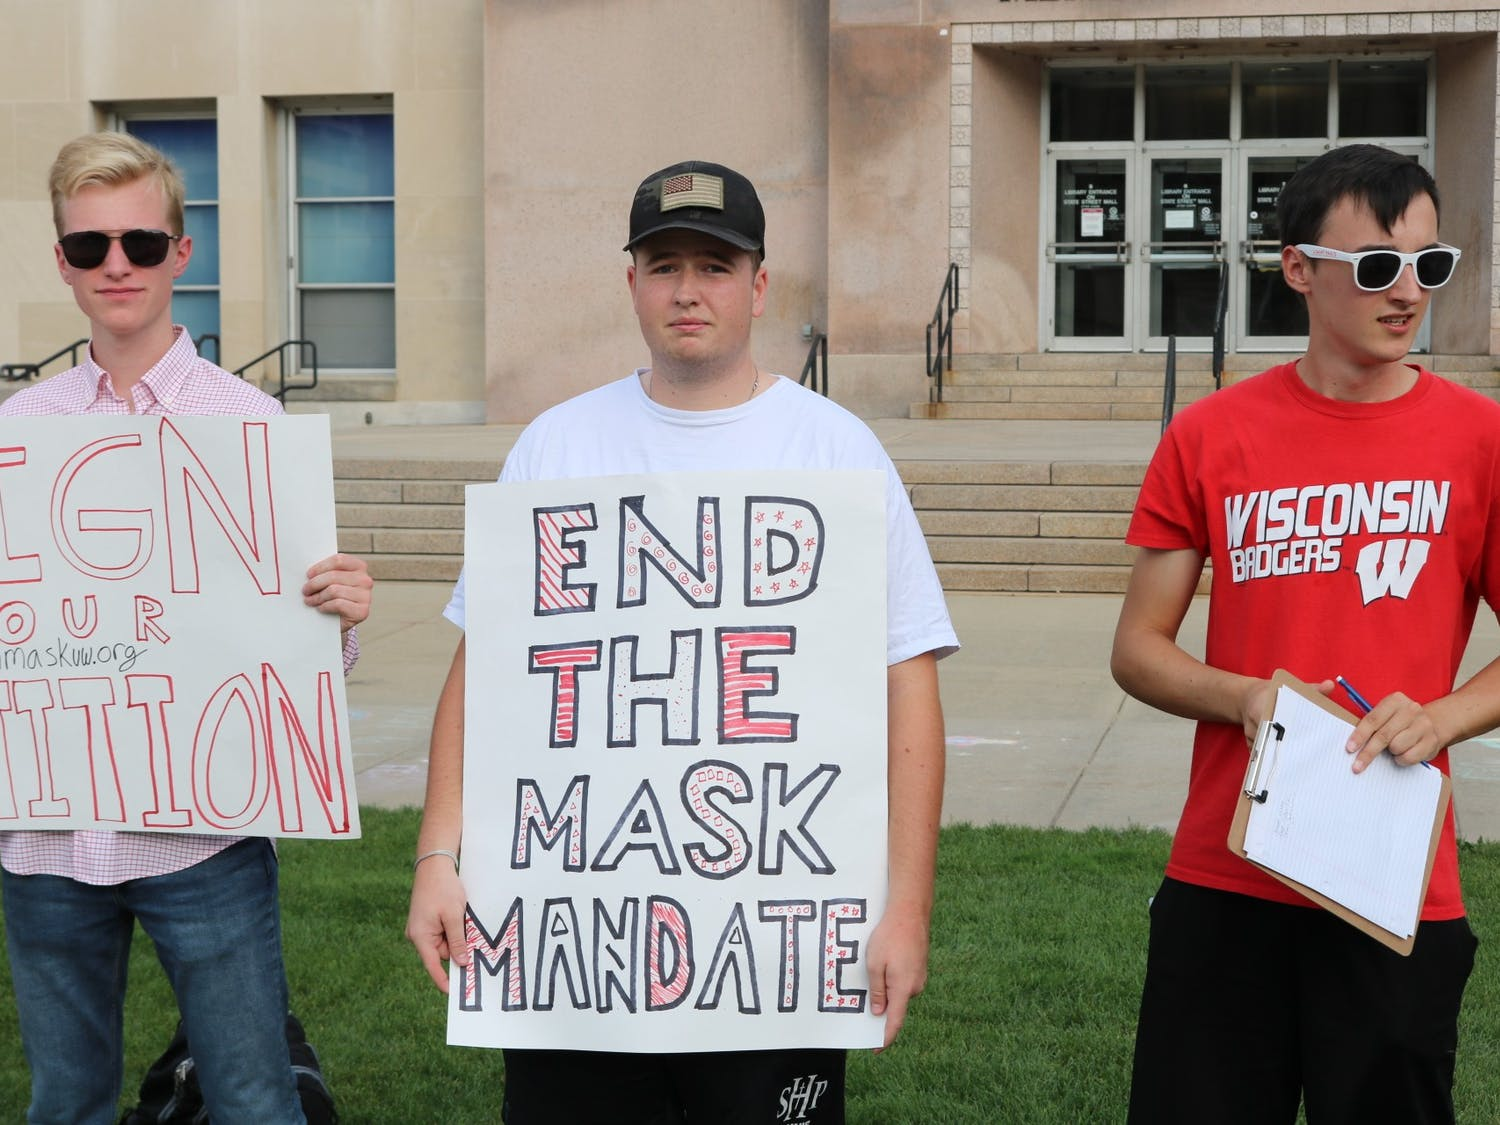 anti-mask protest